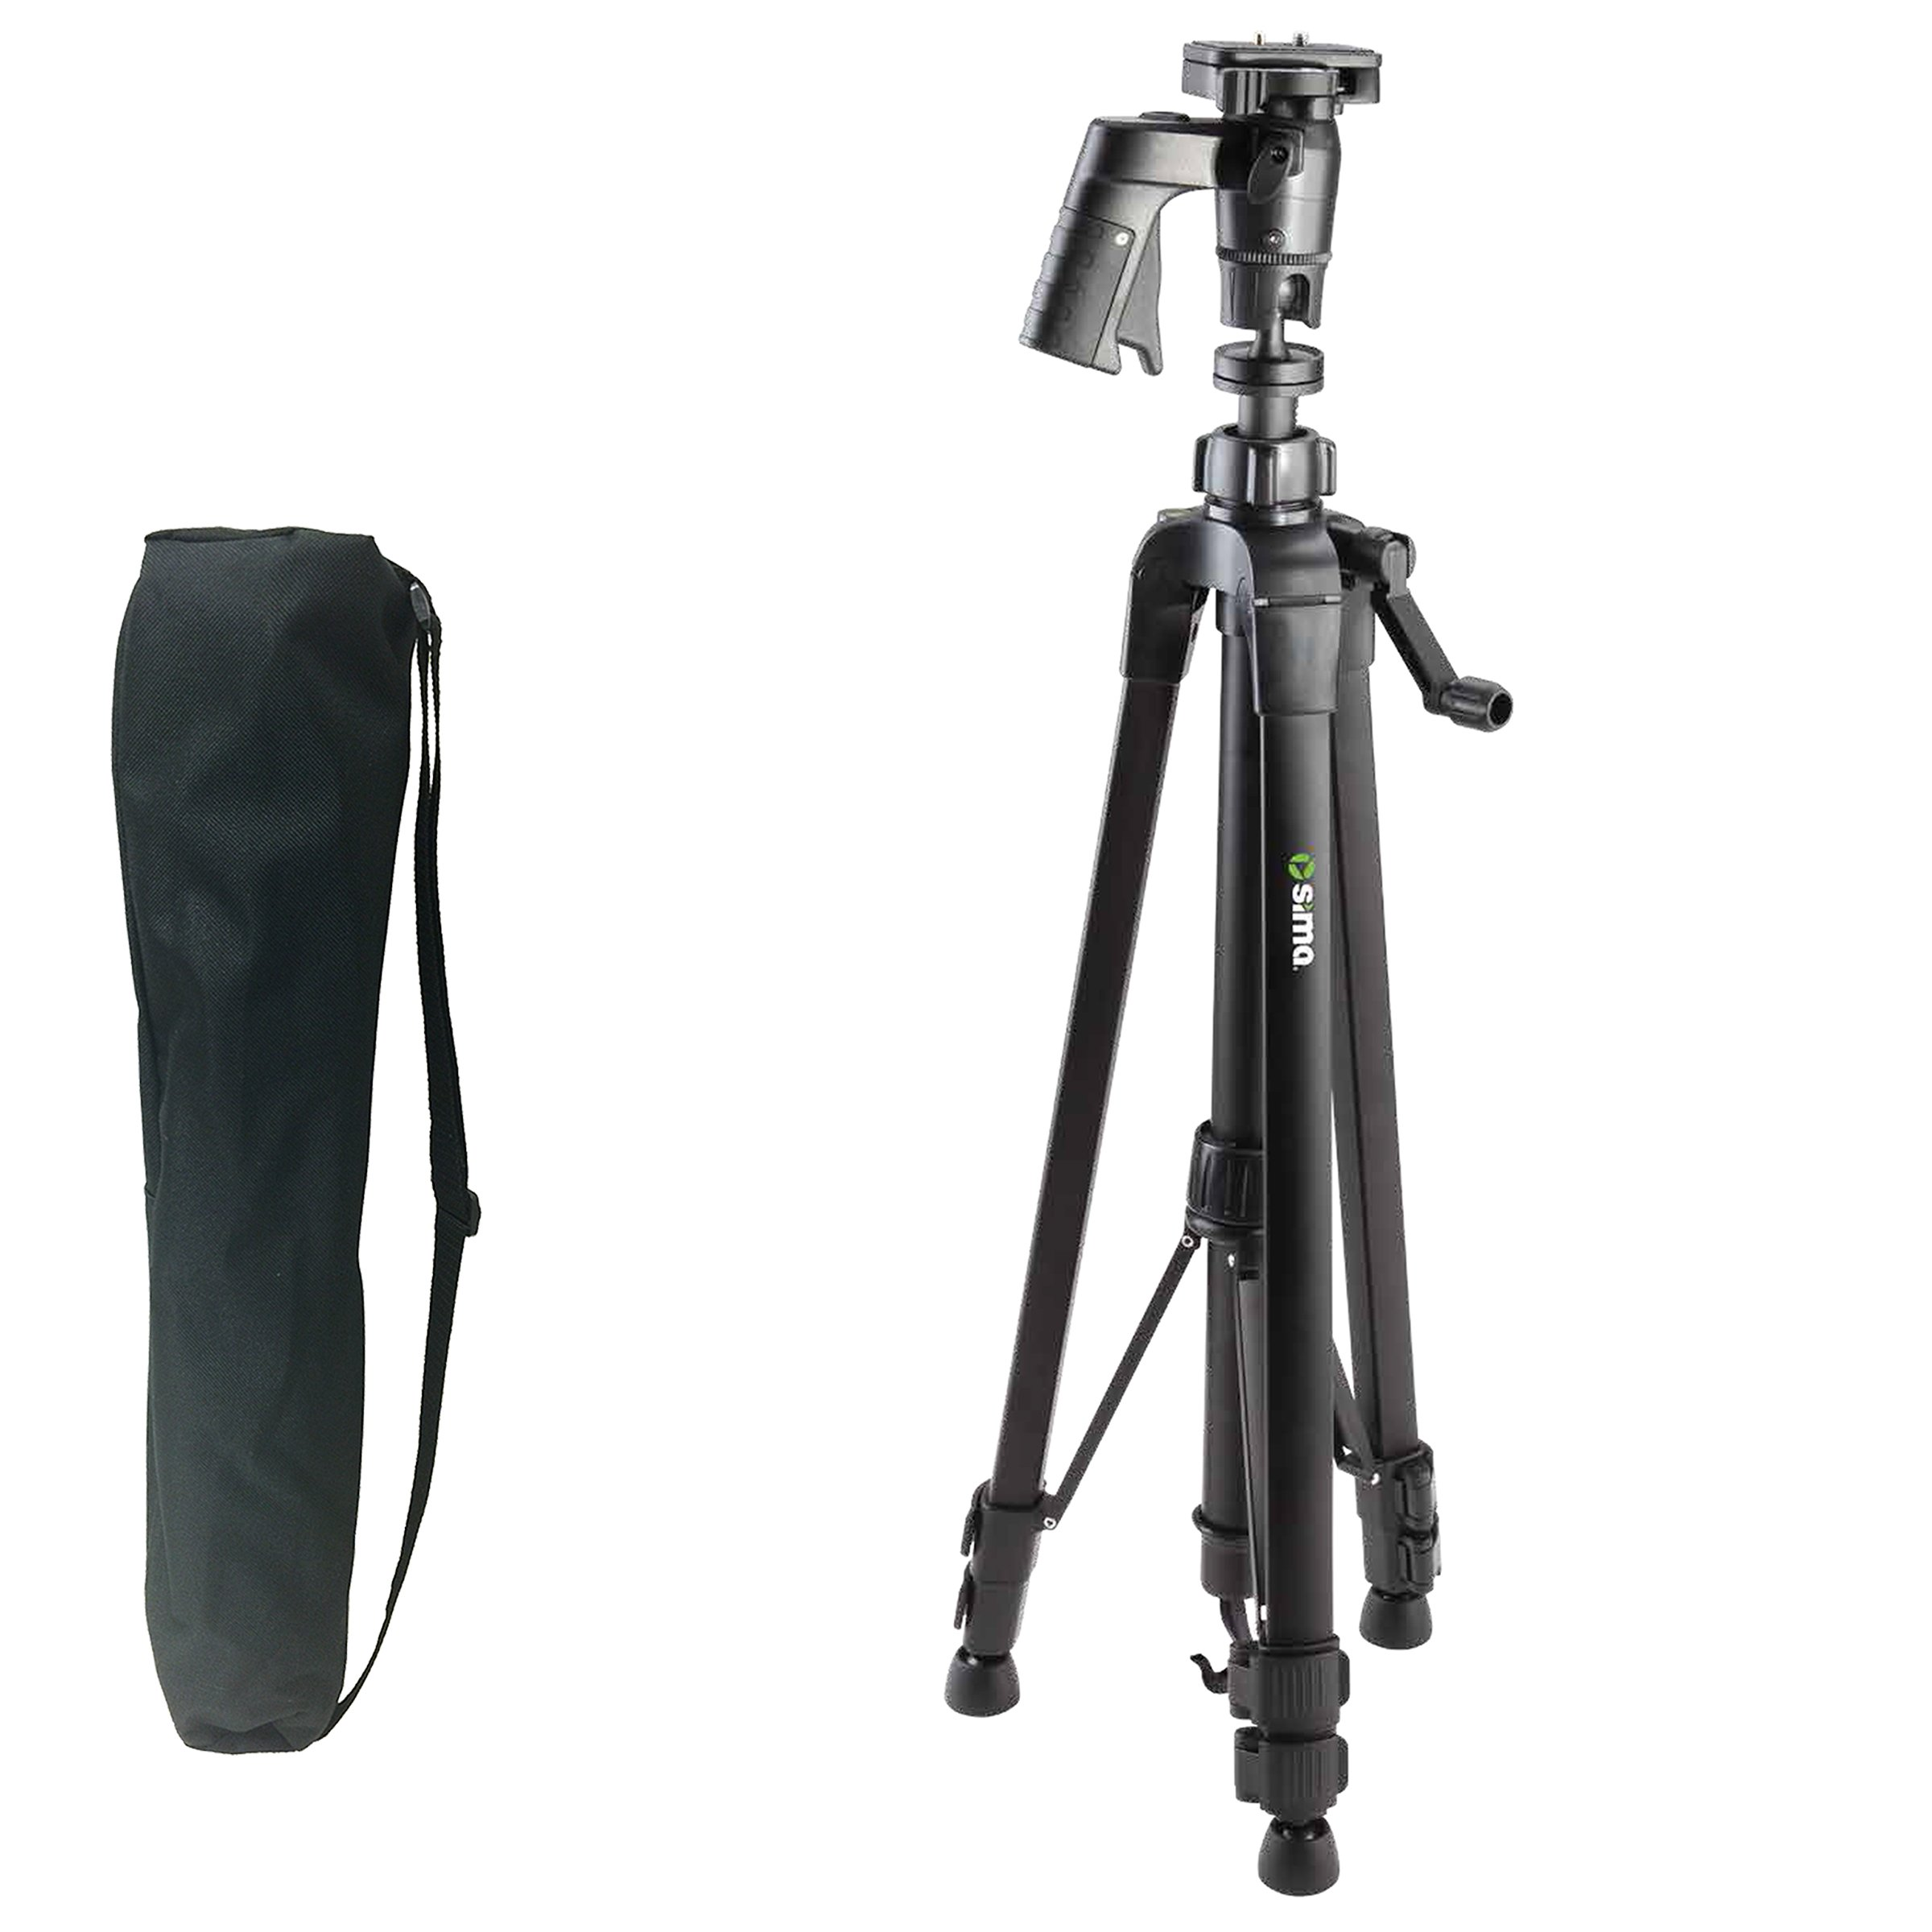 Sima STV-61PG 61'' Pro Panorama Ball Head Tripod with Pistol Grip INCLUDES Zippered Carry Bag with Carry Strap